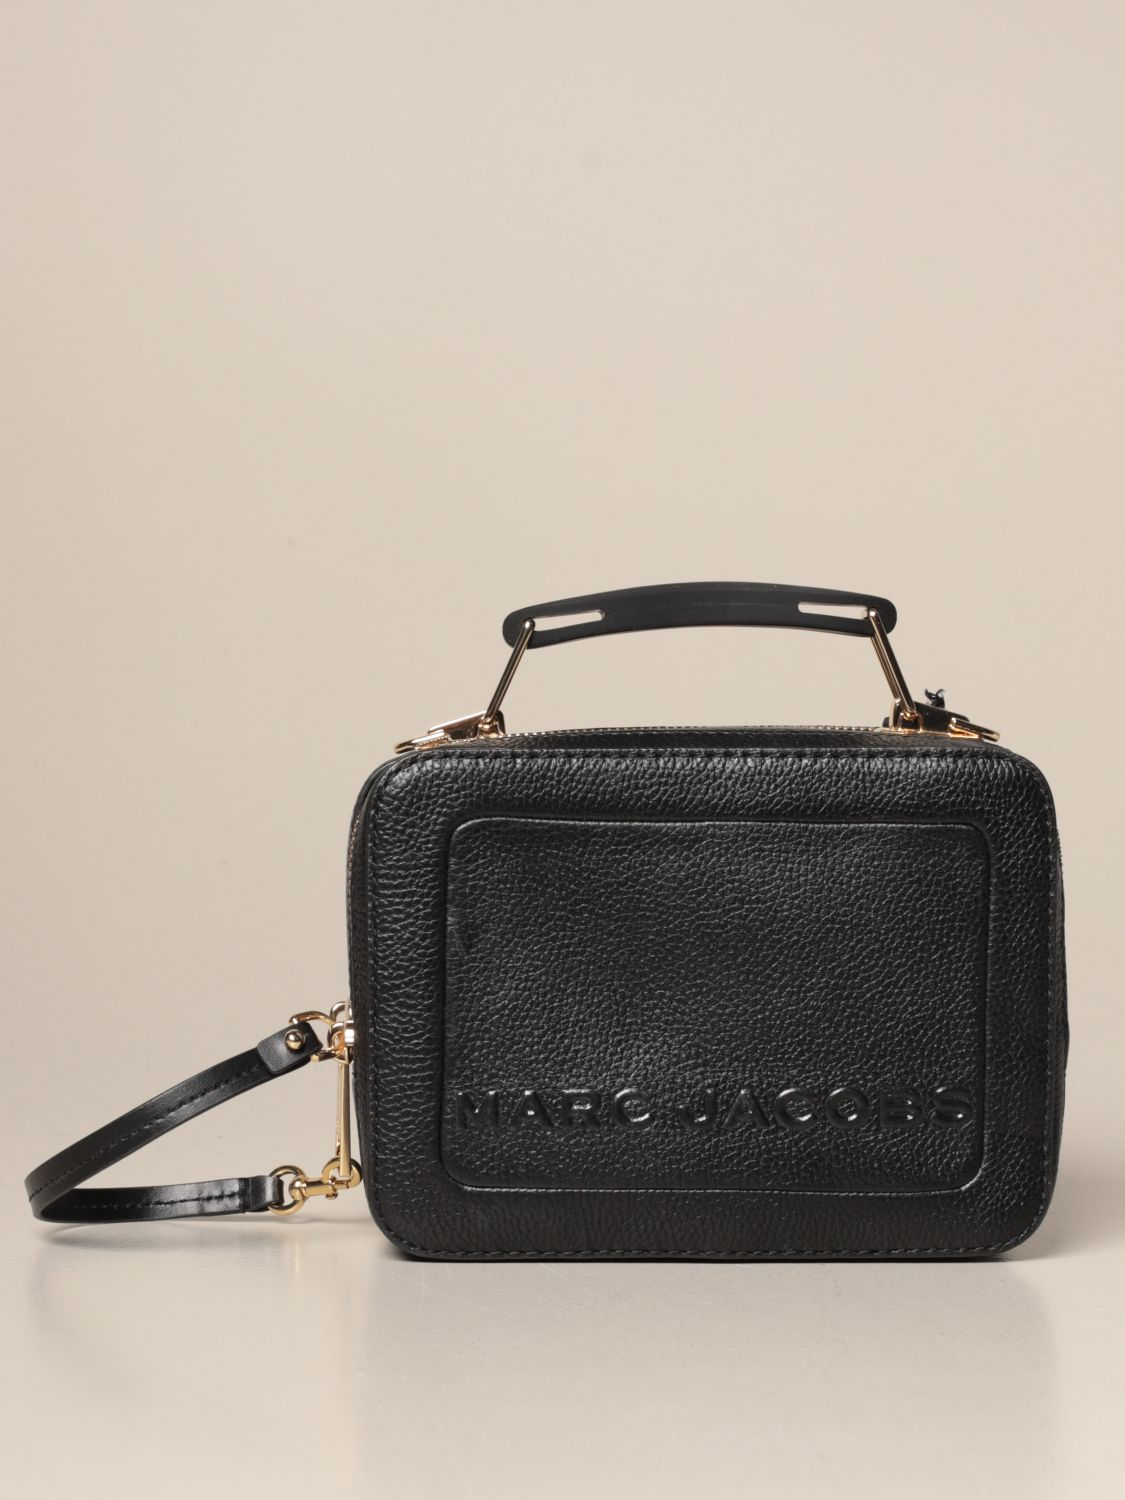 The Box Marc Jacobs bag in textured leather